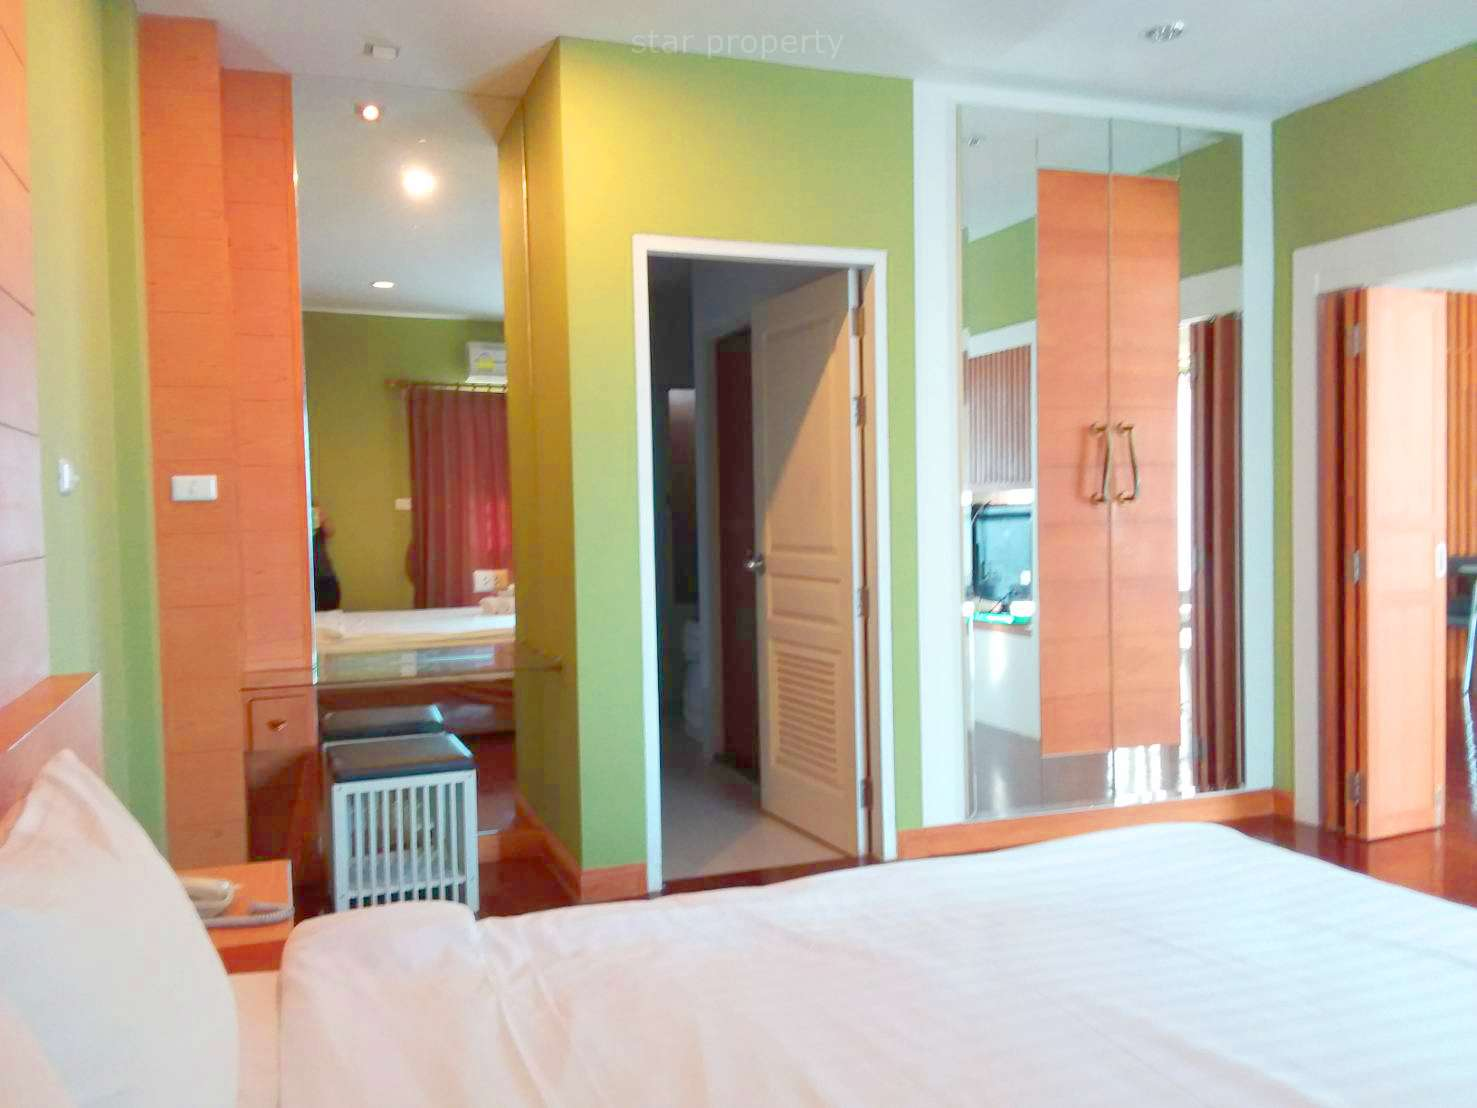 blue mountain codo Hua Hin for sale